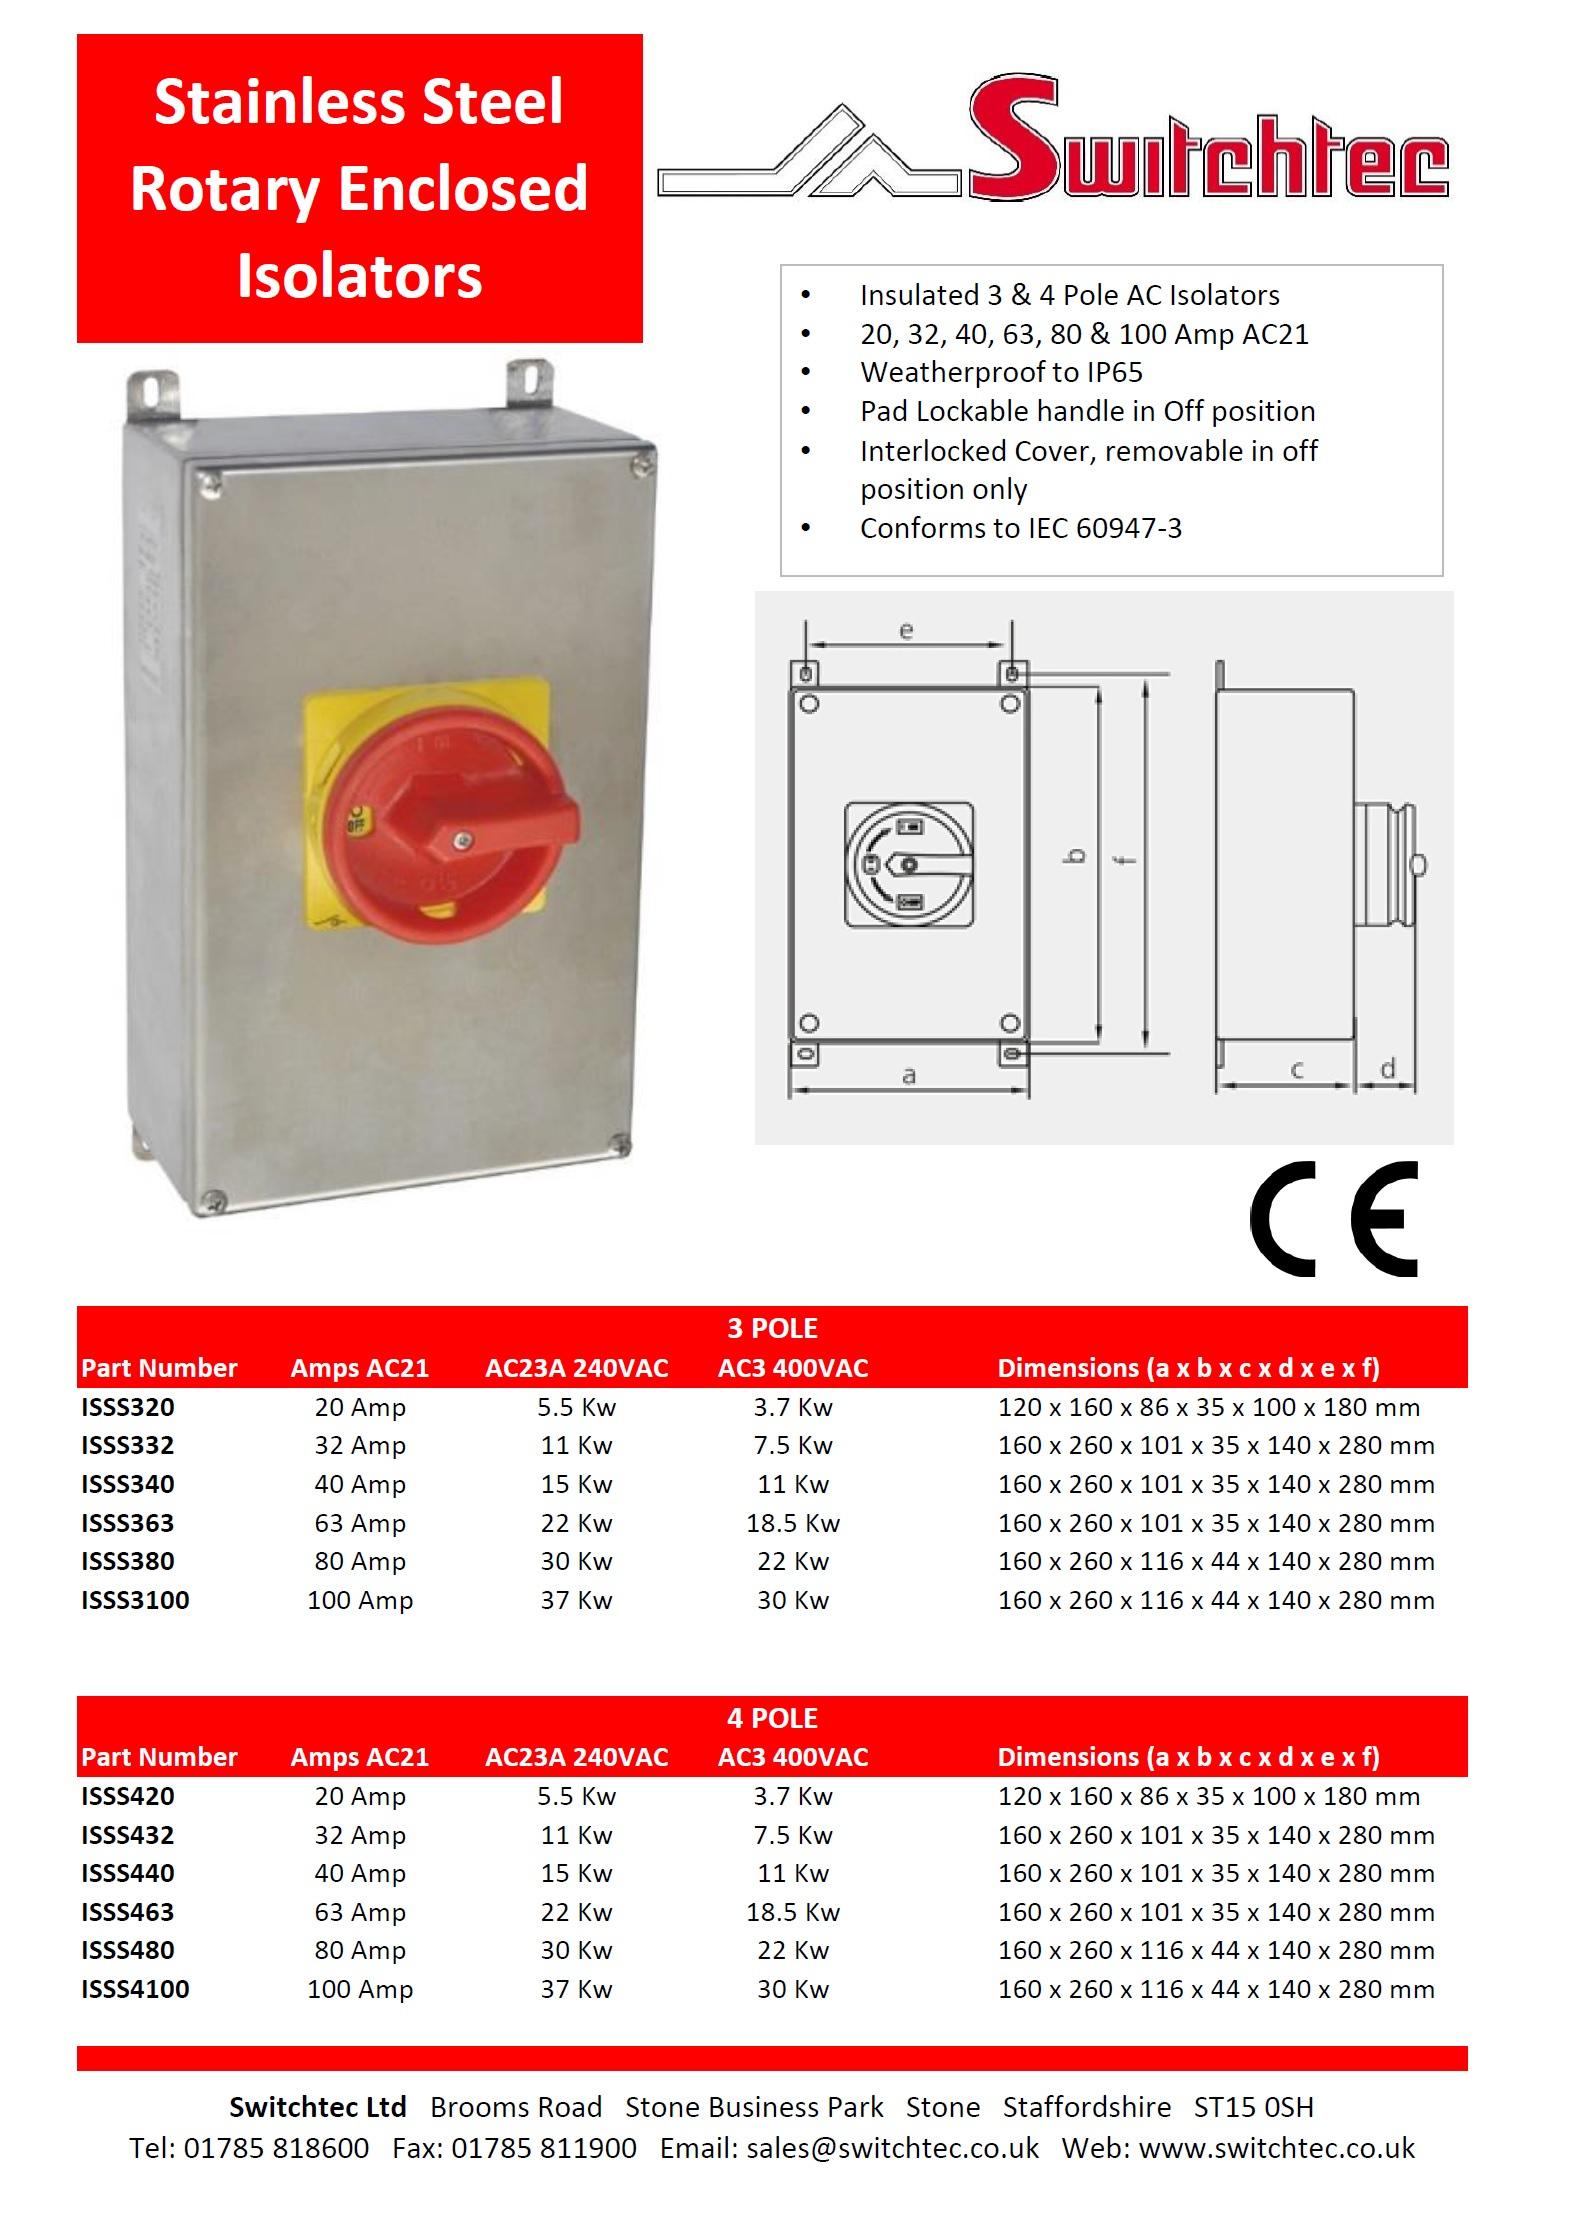 ISSS Stainless Steel Rotary enclosed Isolators